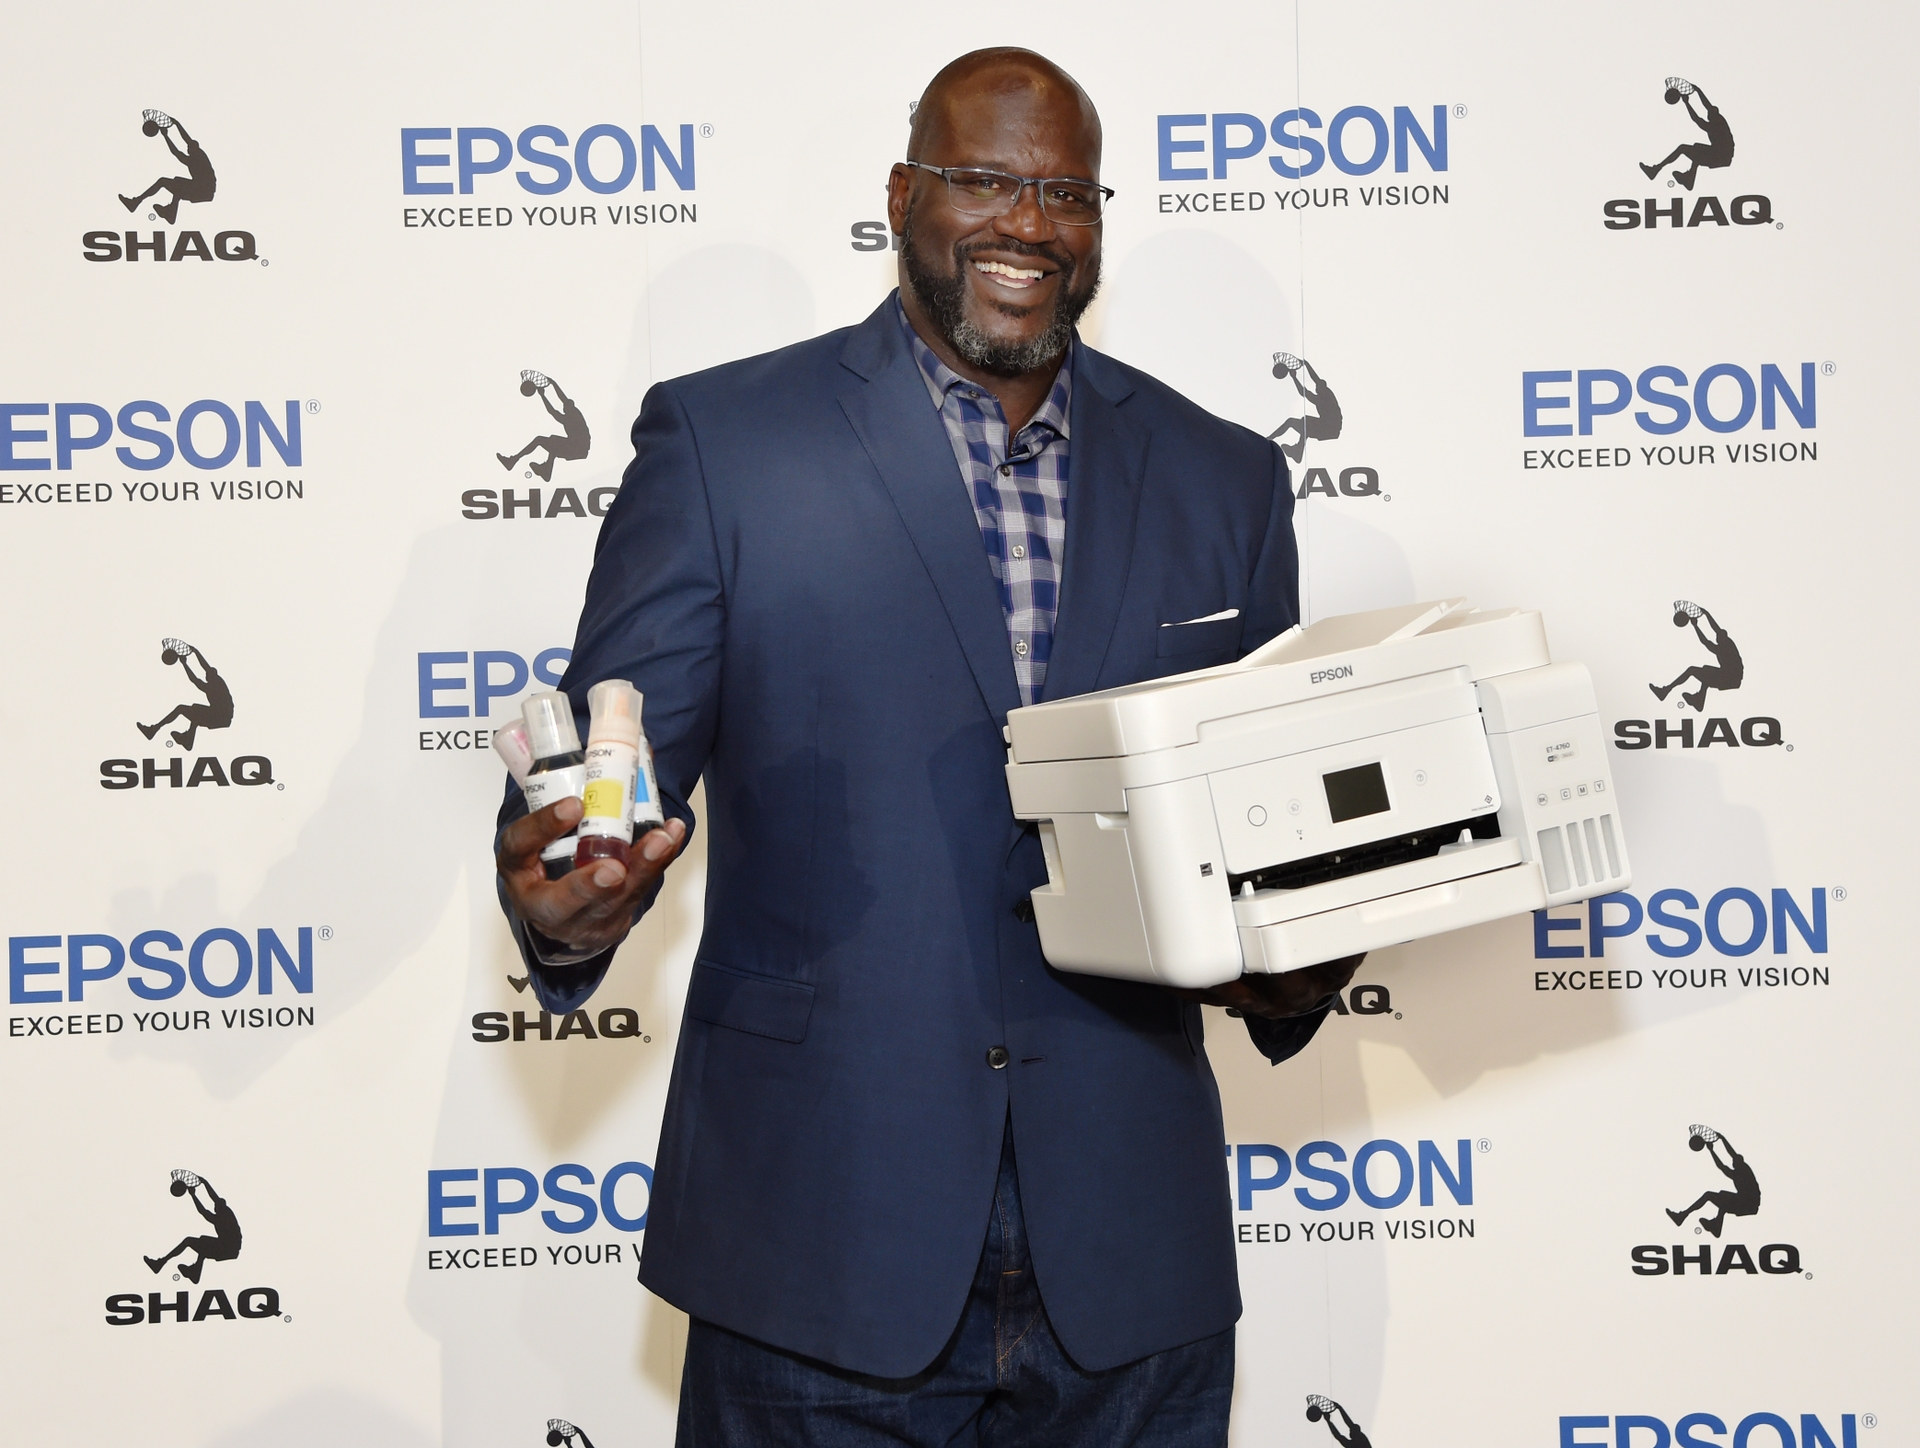 Epson July 9 Media Event_Shaquille ONeal with EcoTank_Image 1